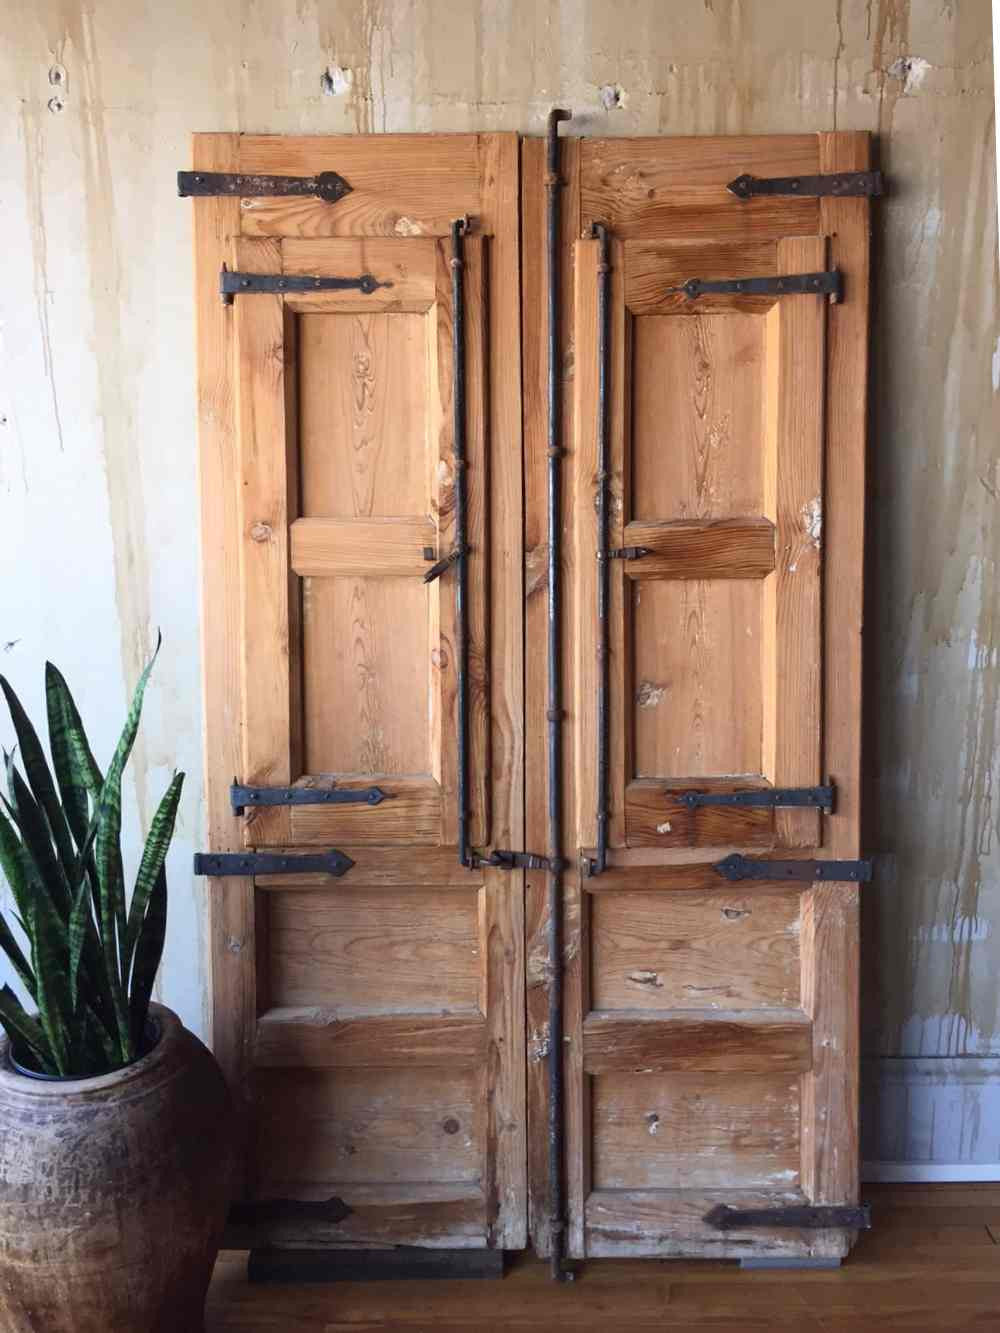 ... Spanish Antique Door Set (SOLD) - Mercato Antiques - 2 ... - Spanish Antique Door Set (SOLD)